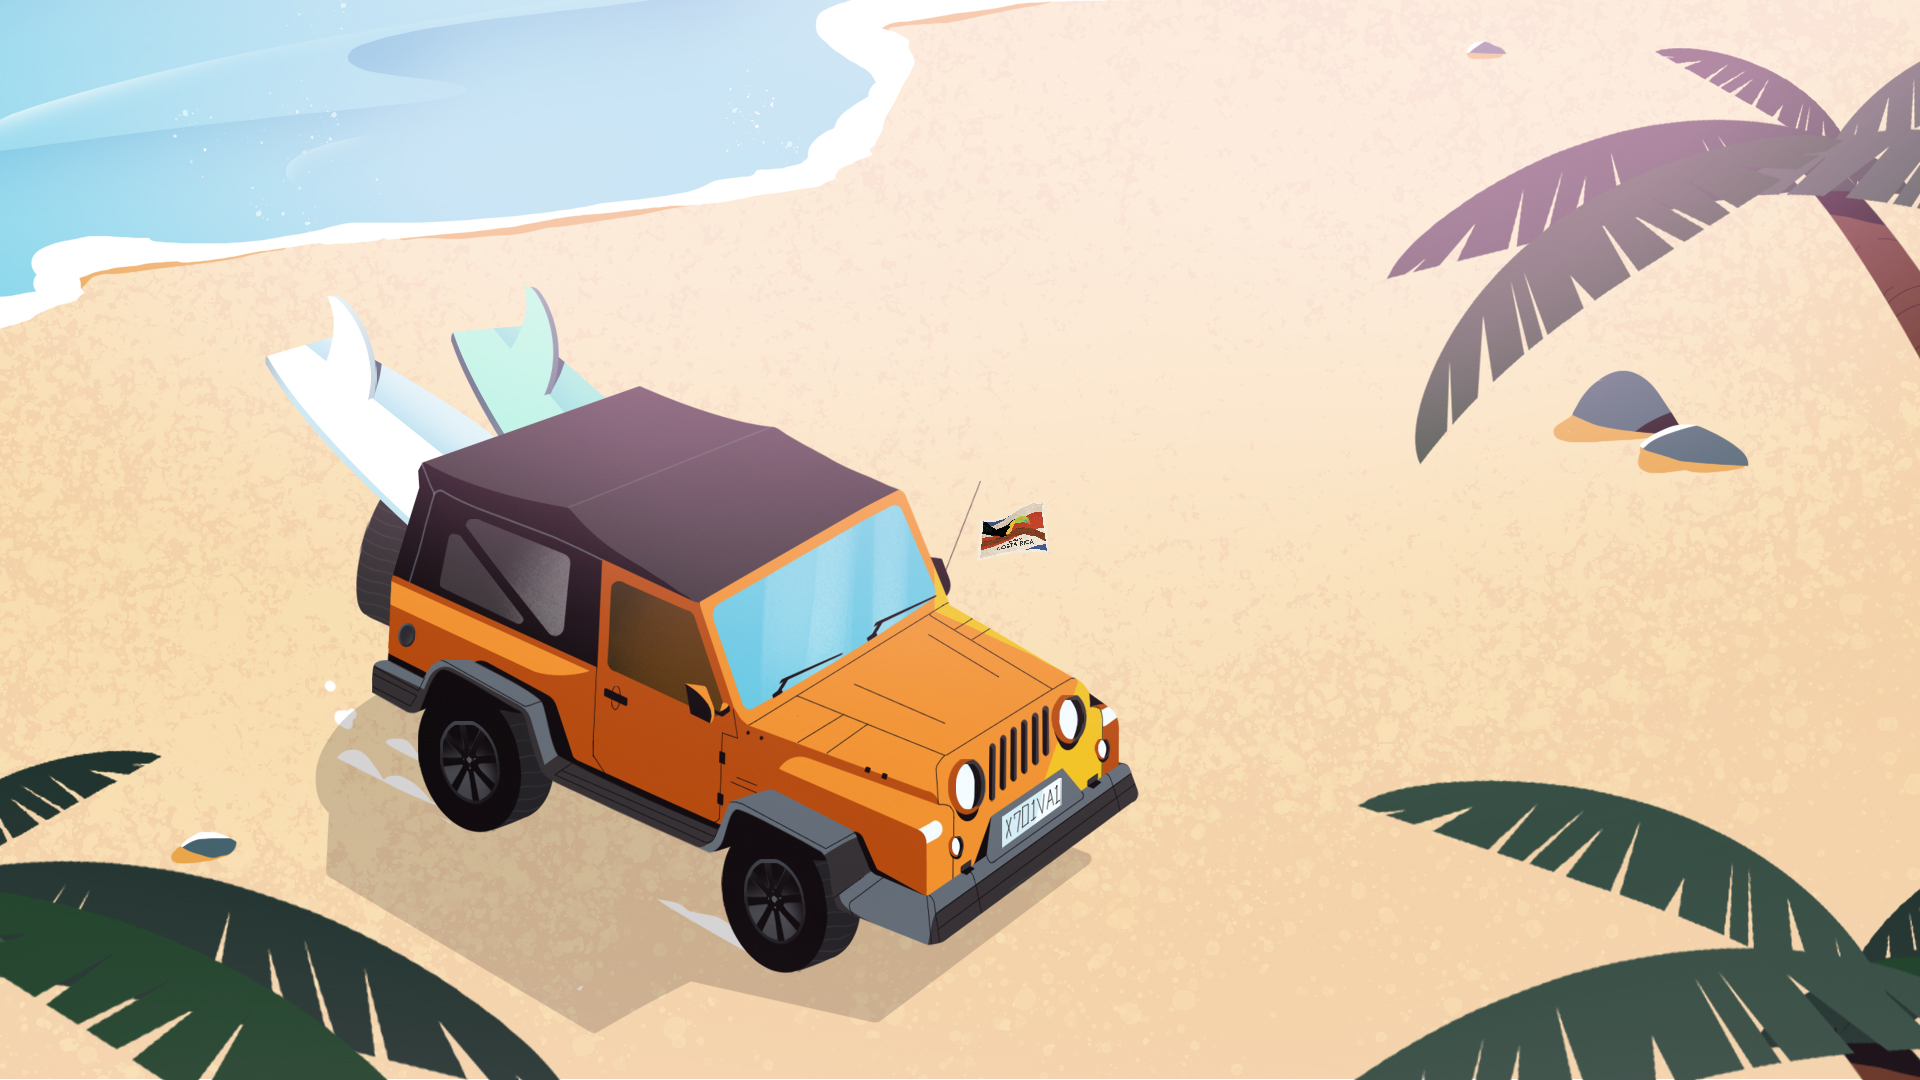 board_1_car_beach_v03.jpg